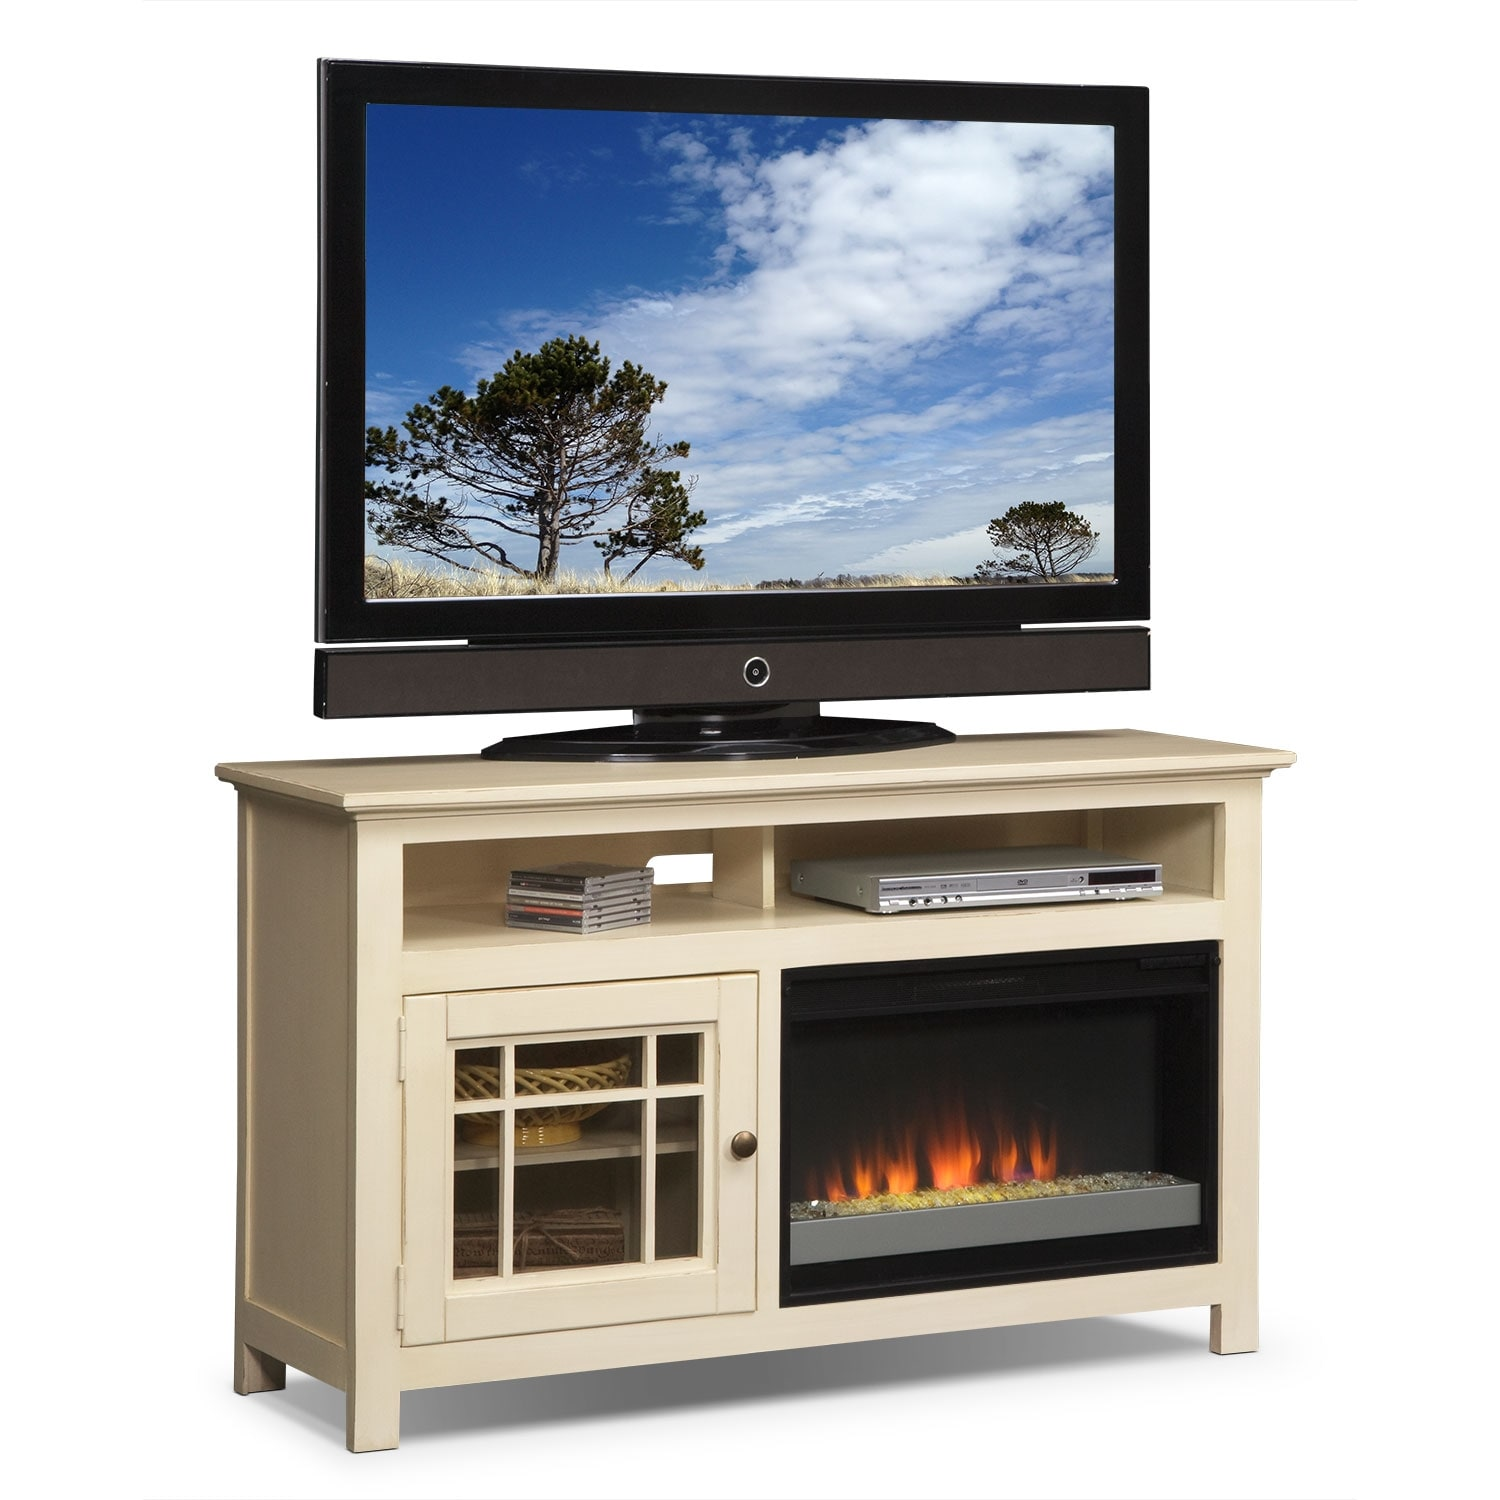 """Merrick 54"""" Fireplace TV Stand with Contemporary Insert - White"""